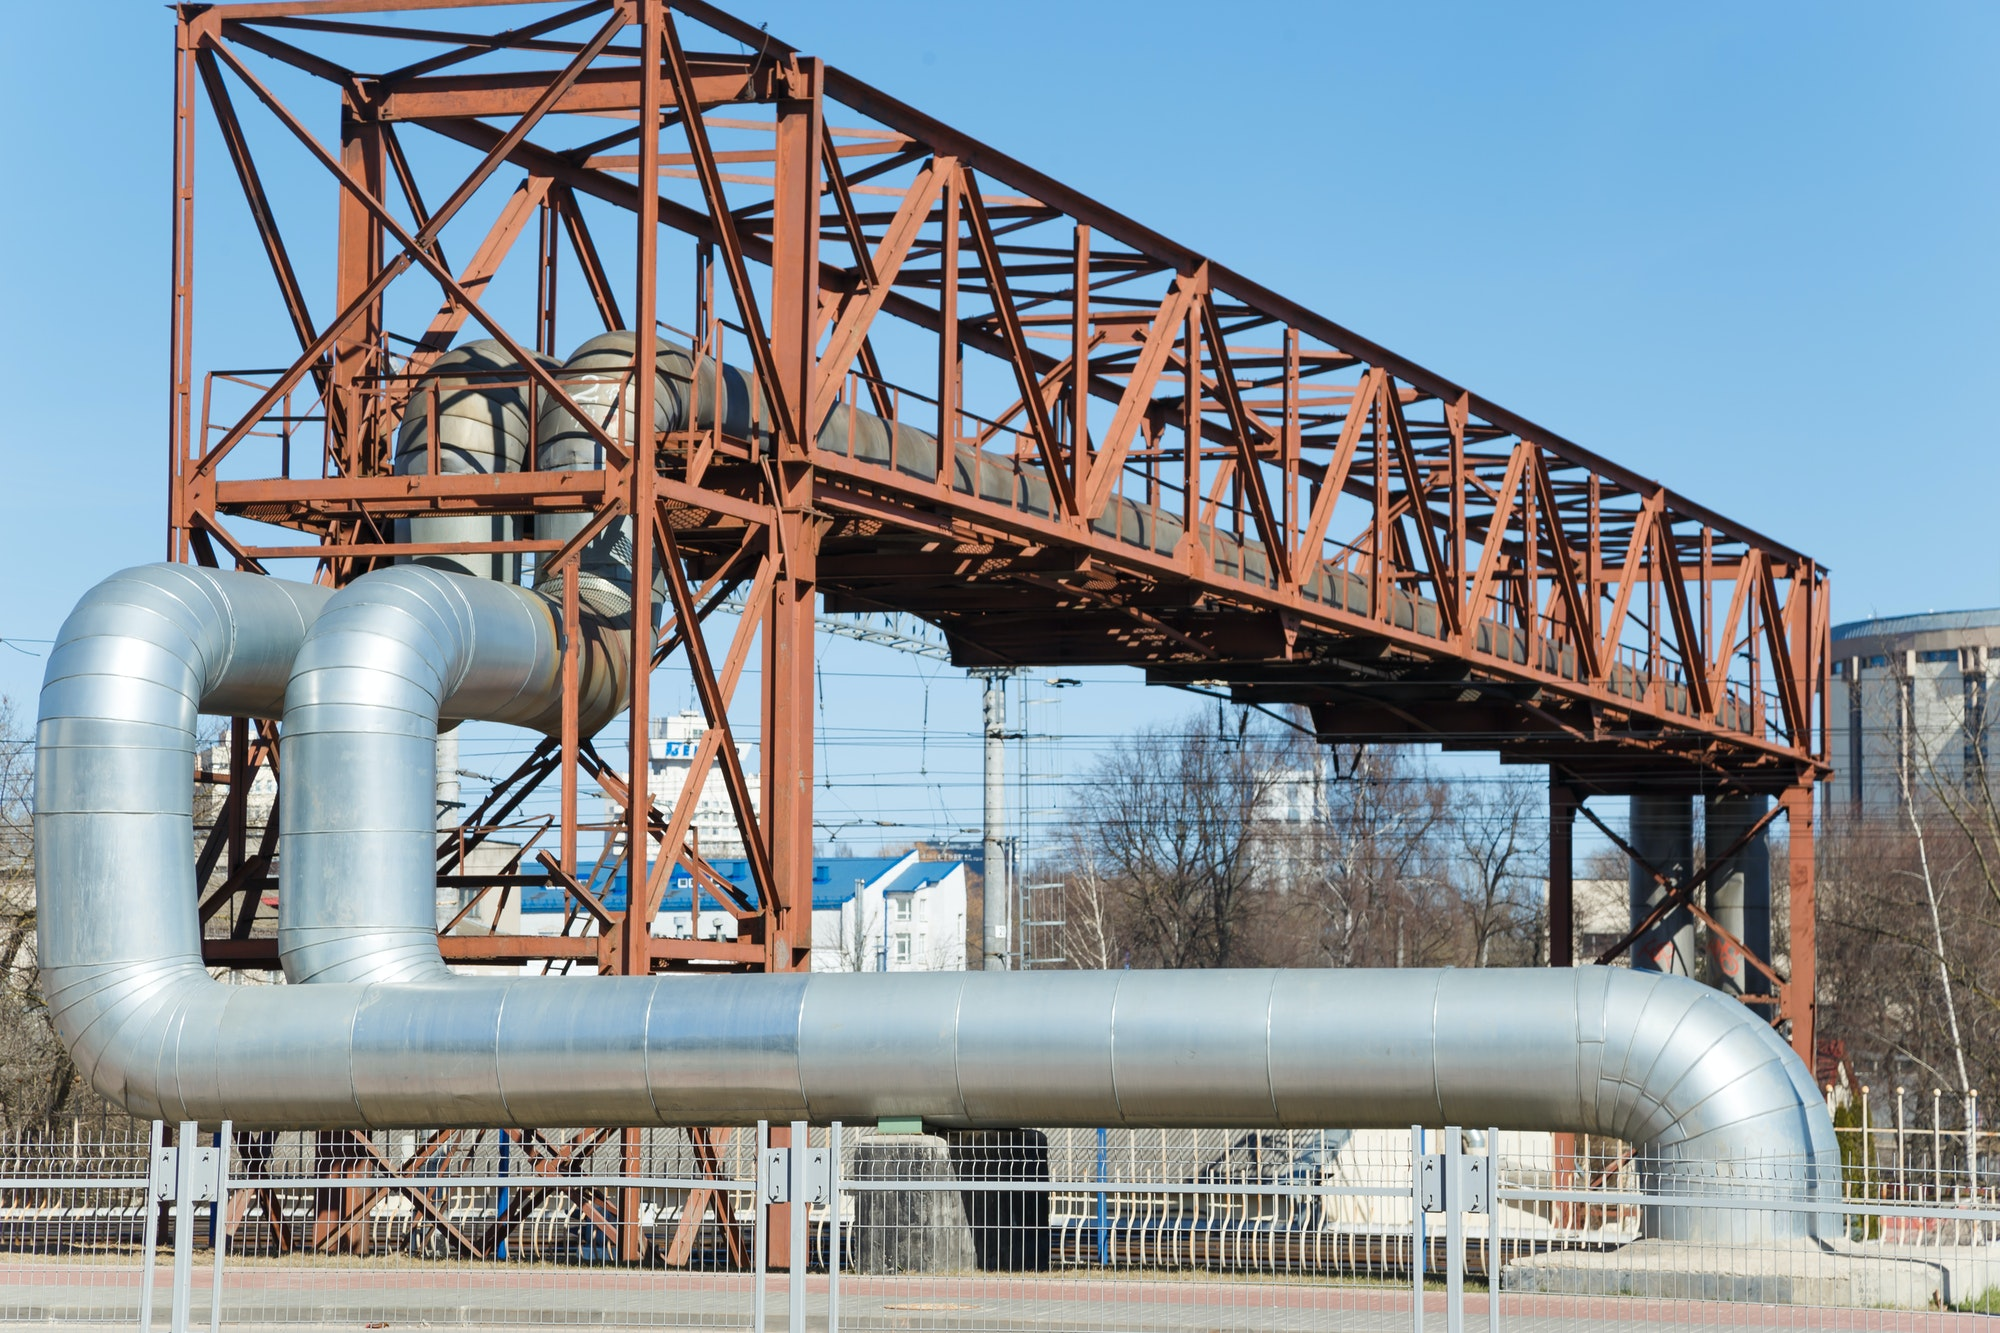 Industrial huge pipes on metal viaduct outdoor